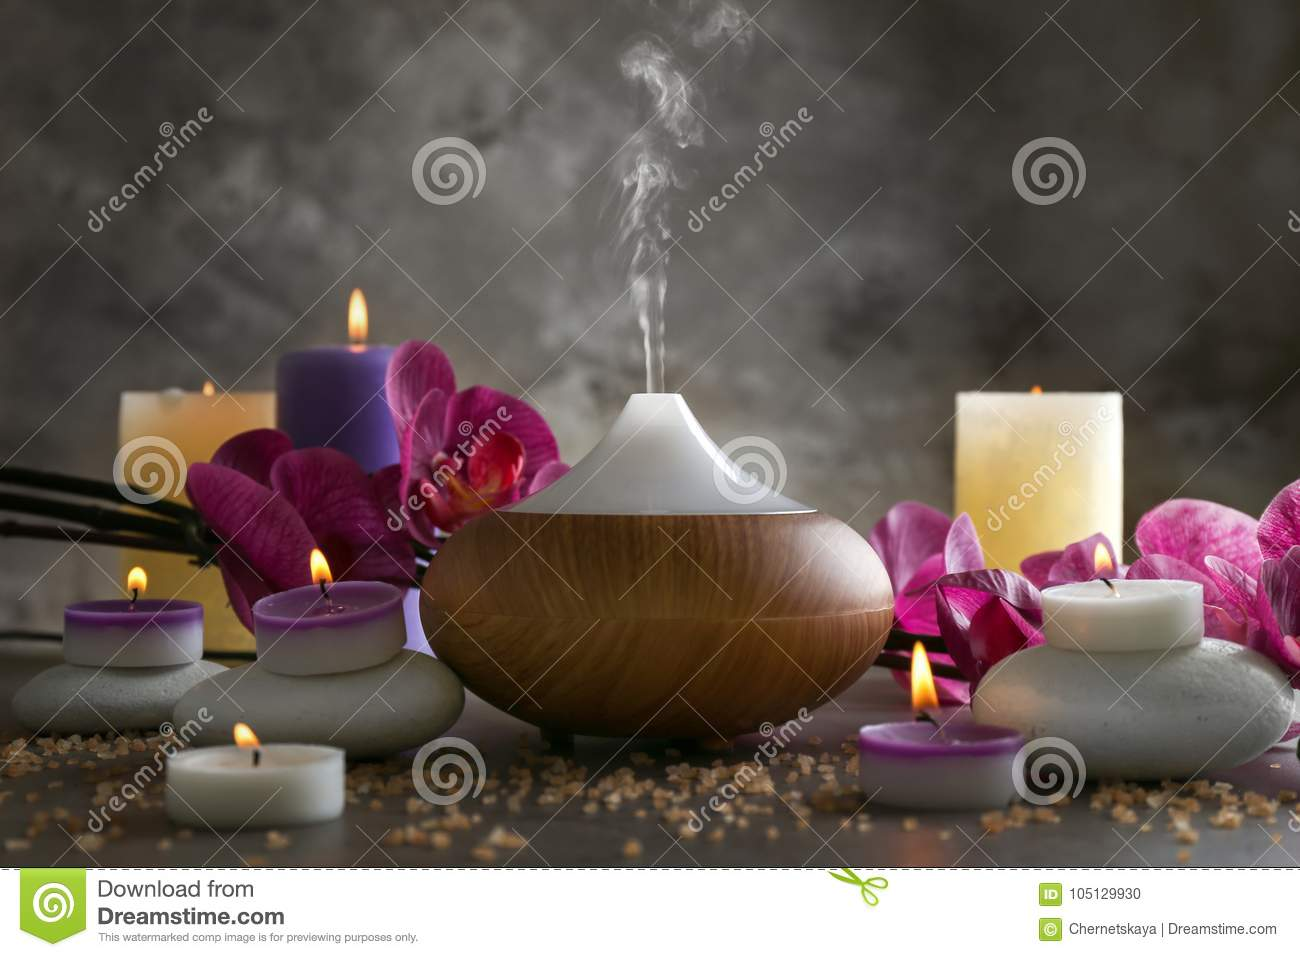 Aroma oil diffuser, candles and flowers